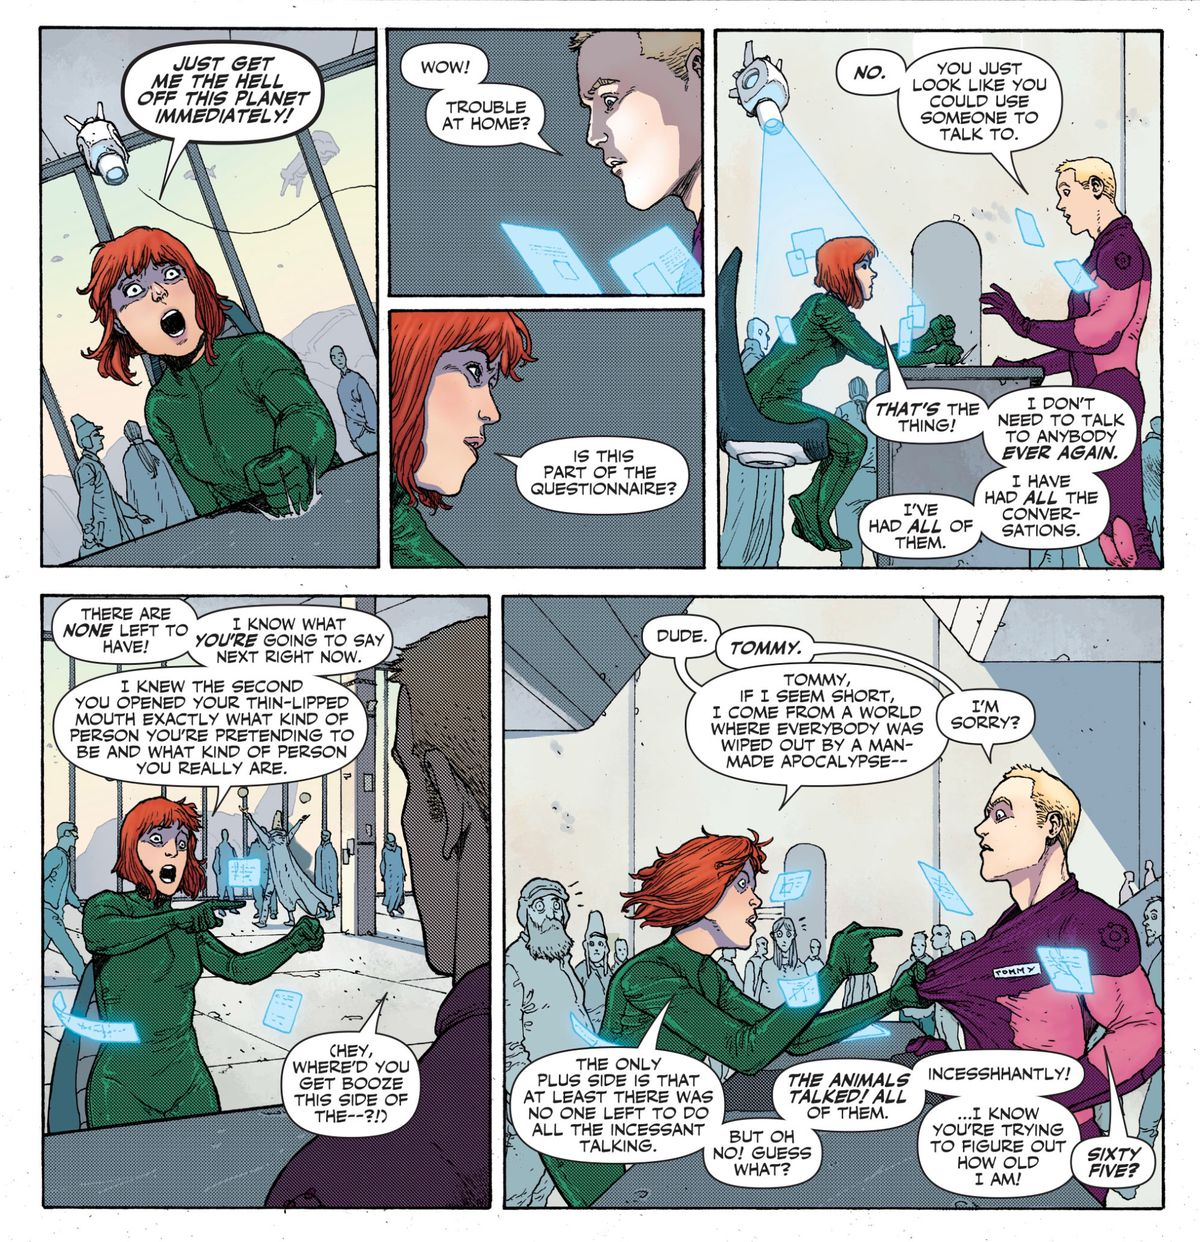 The immortal Rose Thorn feverishly peppers a future office worker with questions about how to get off Earth, in Legion of Super-heroes: Millennium #1, DC Comics (2019).